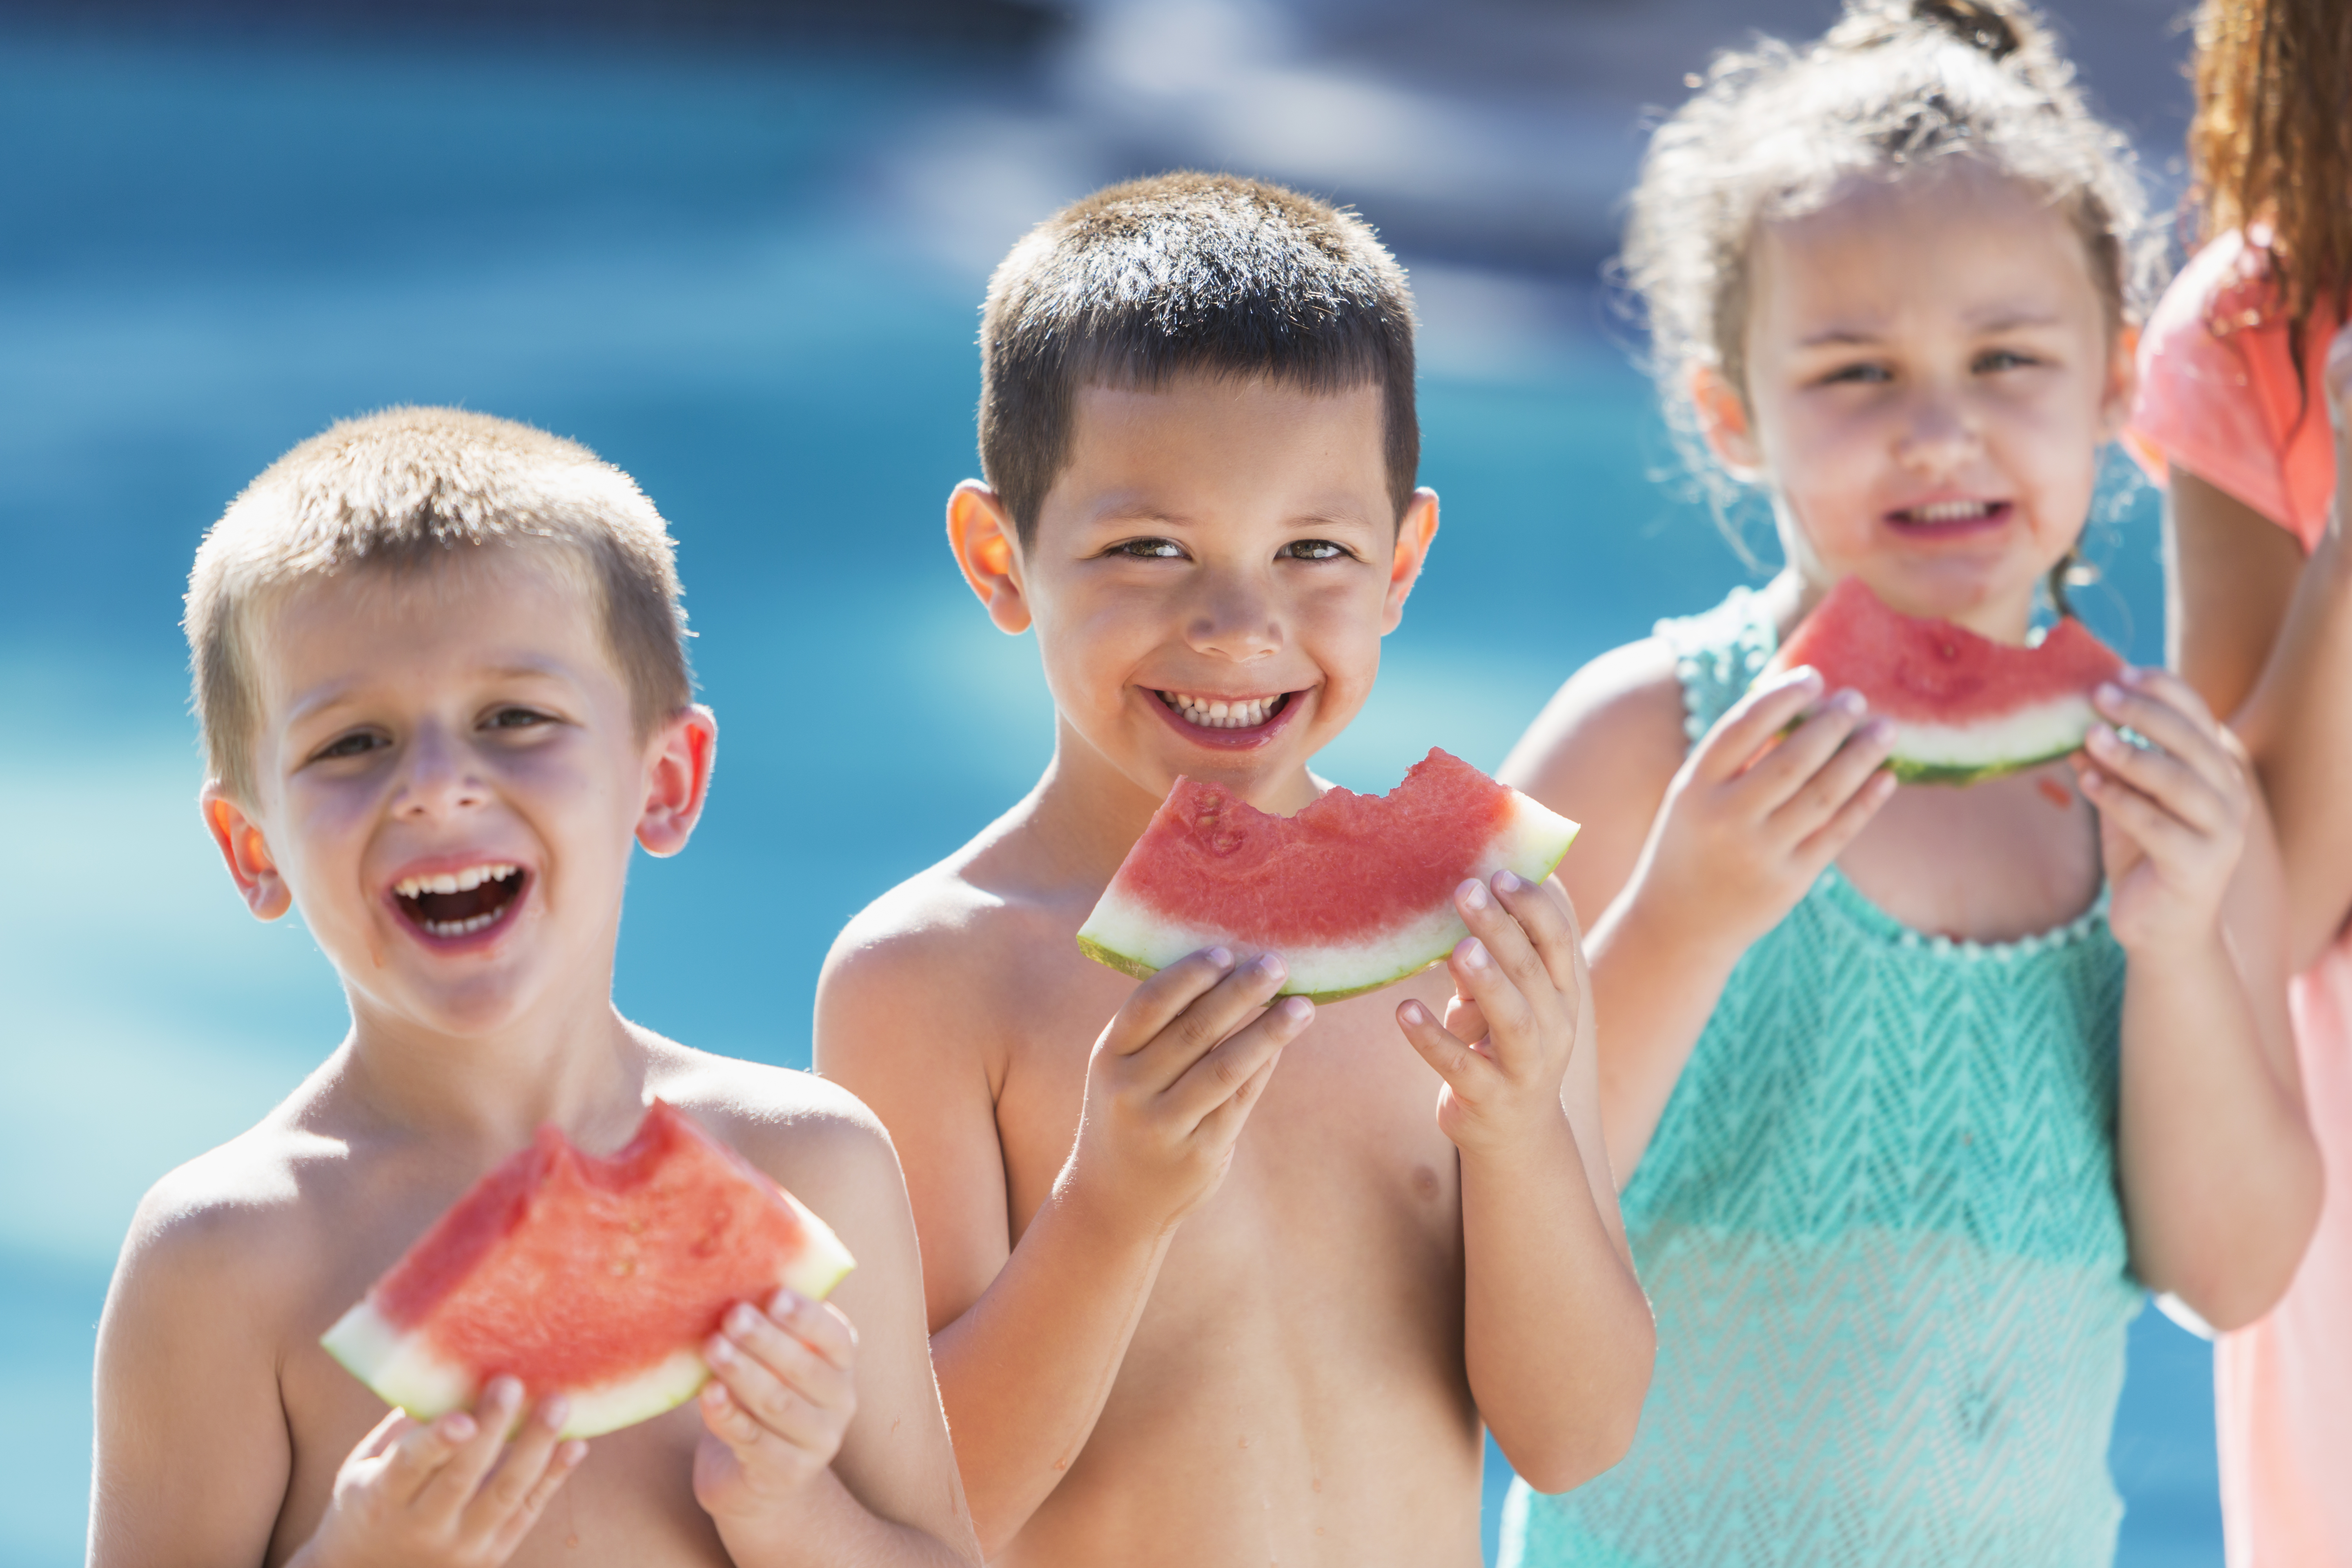 Sample photo to represent the Watermelon Festival at Luck Ladd Farms